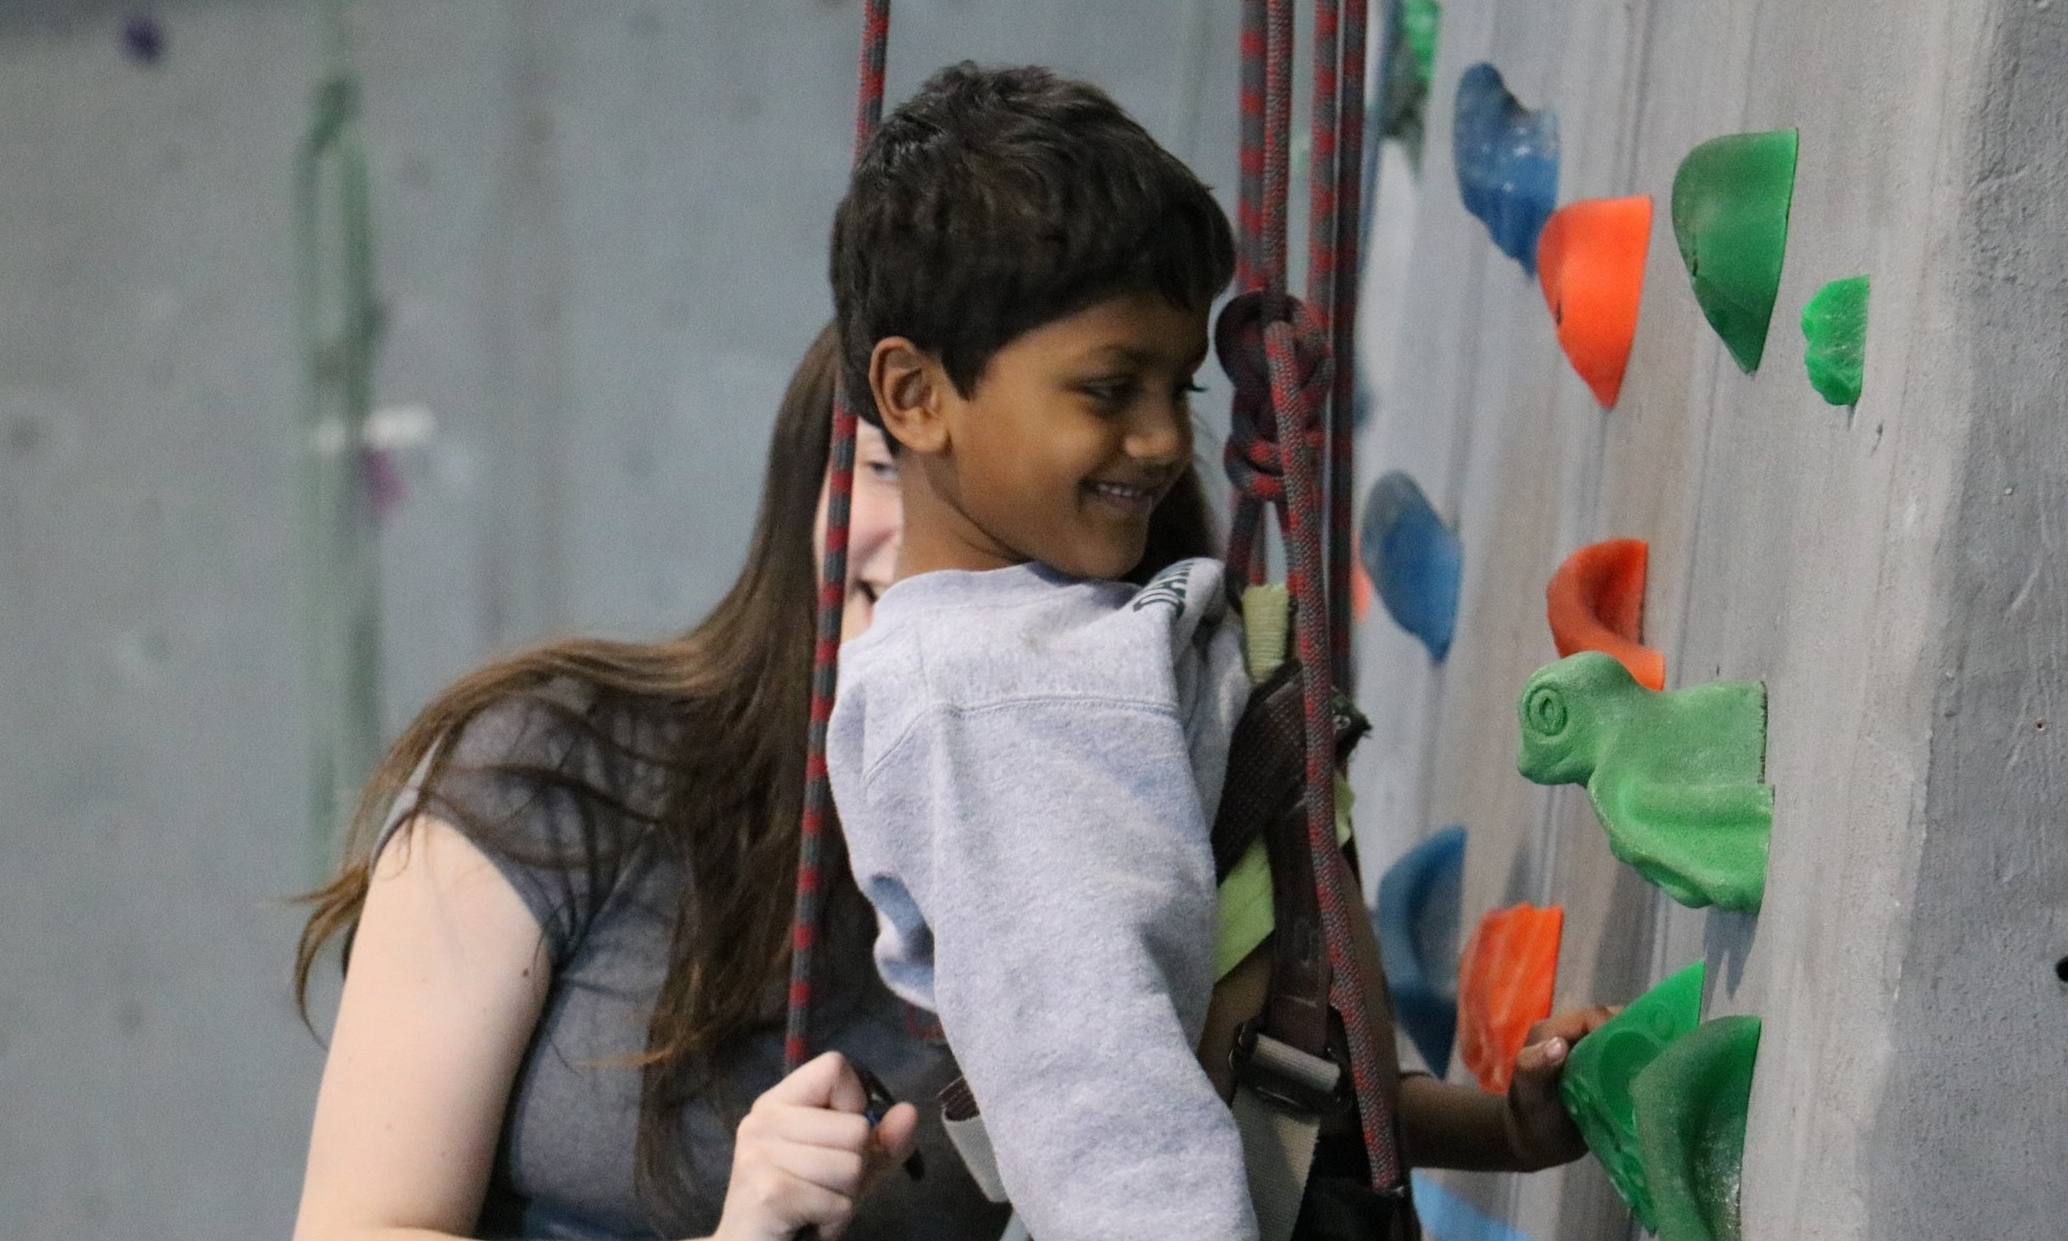 - Private After School Programs